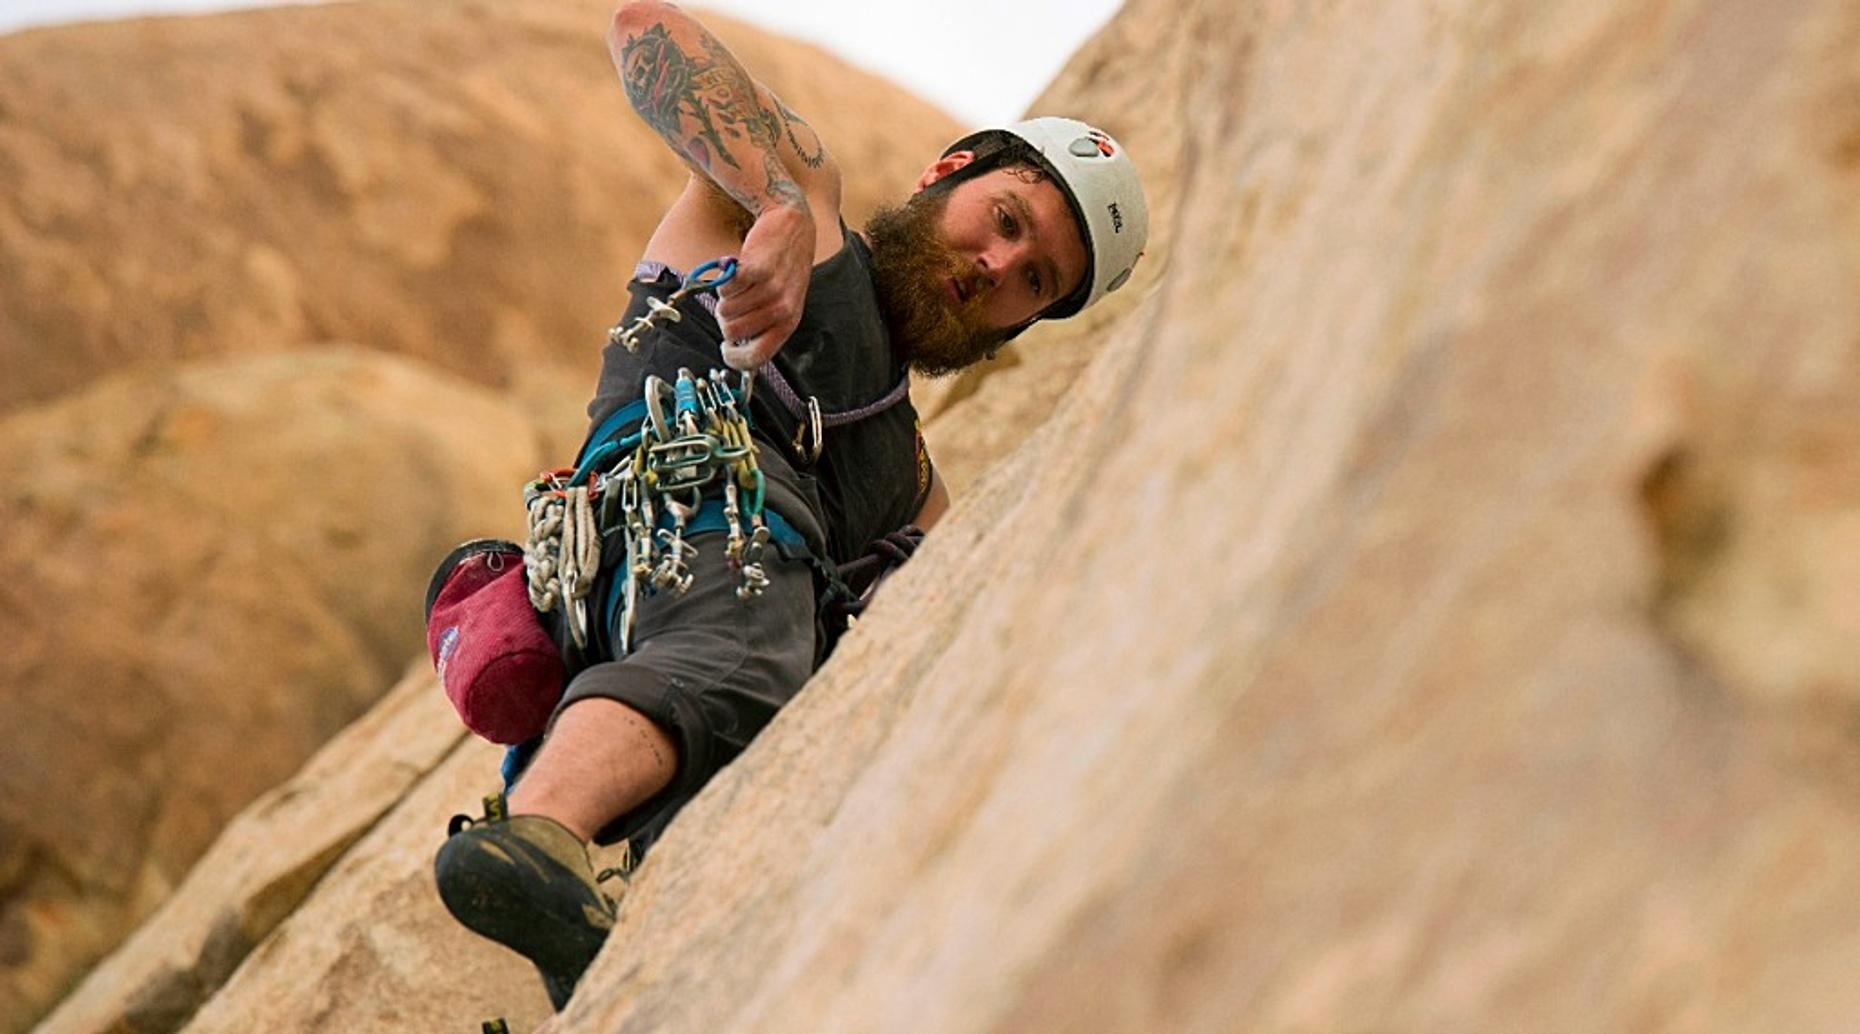 Rock Climbing Top Rope Anchors in Chickies Rock